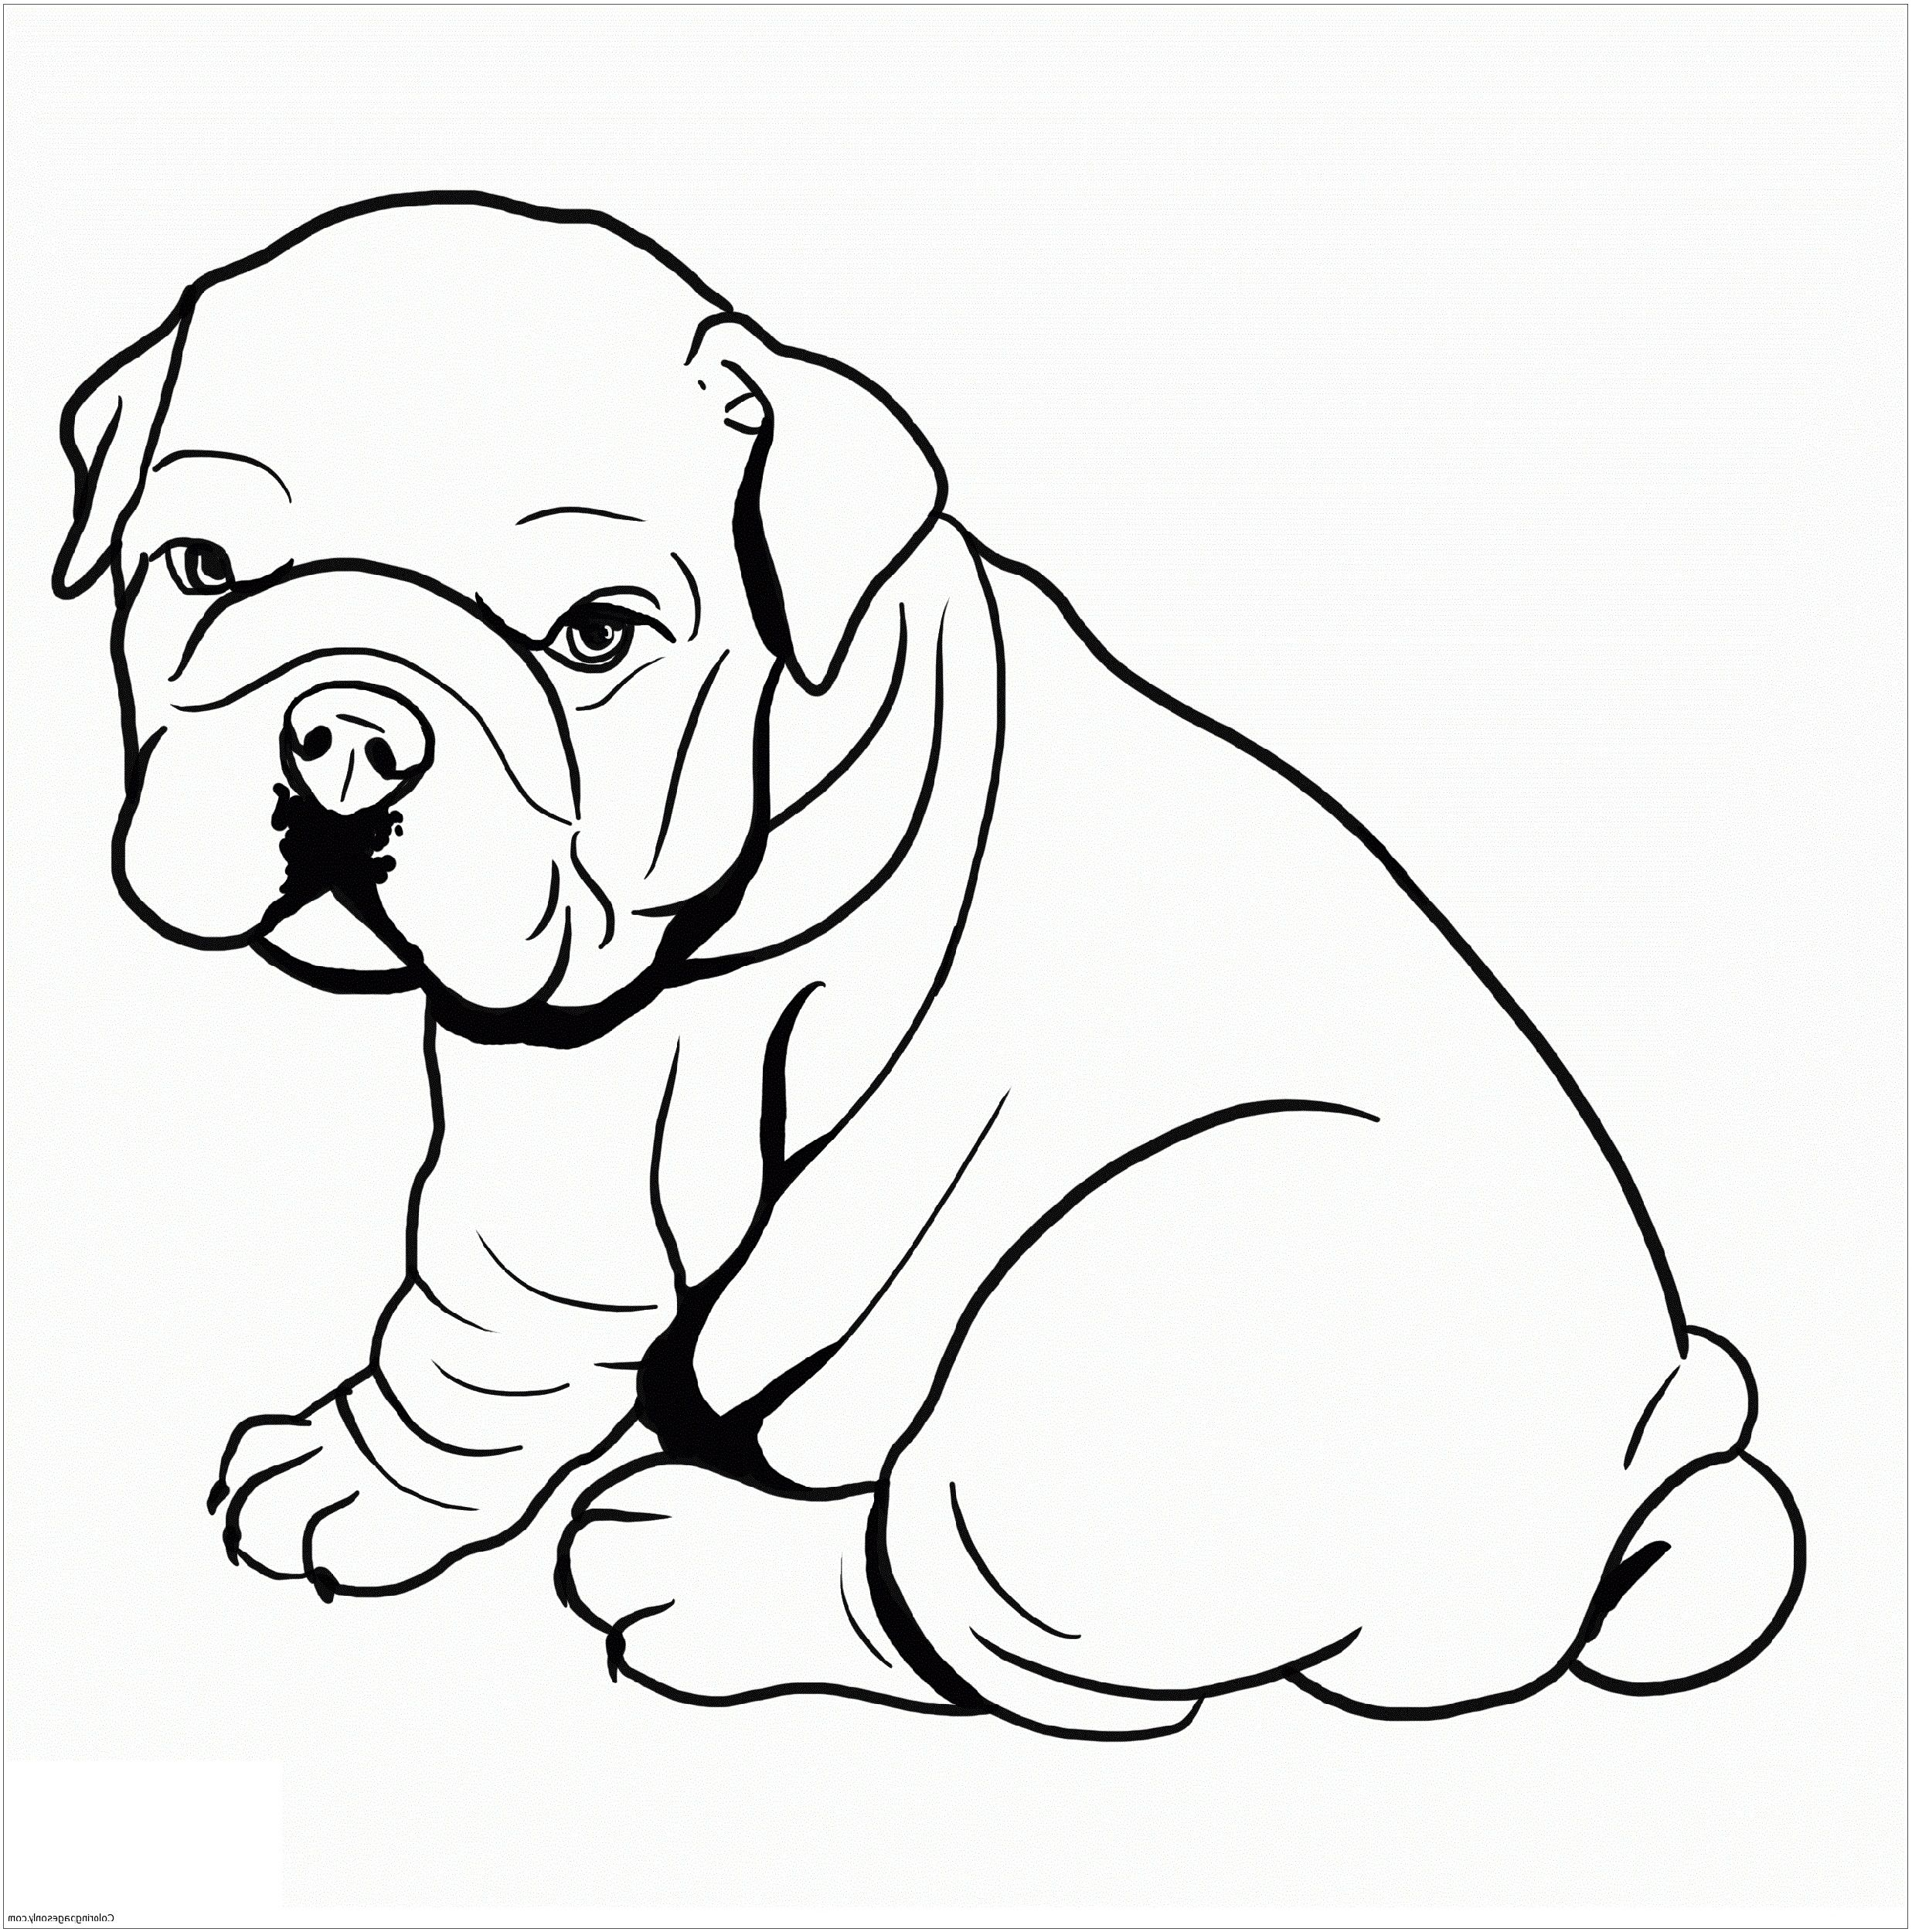 Pitbull Coloring Pages For Dog Lovers Dog Coloring Page Puppy